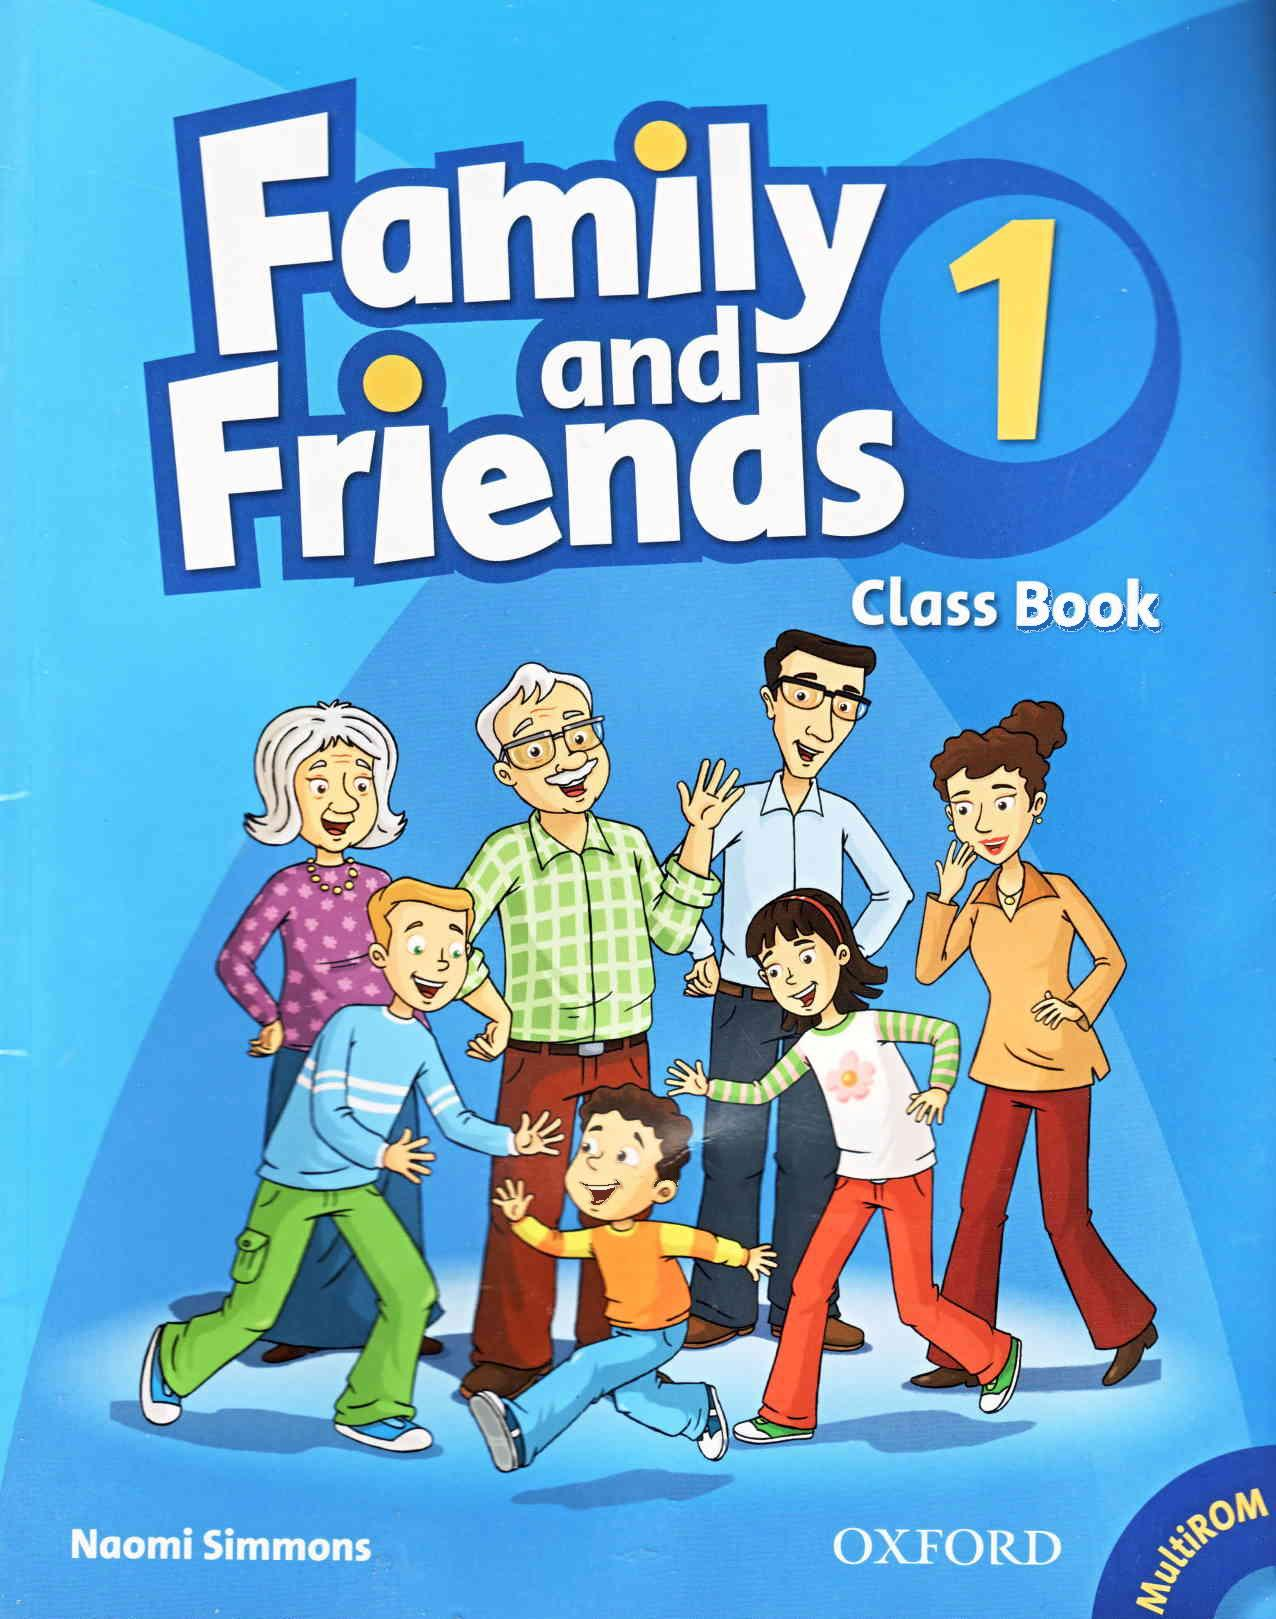 Family and friends 1 - classbook